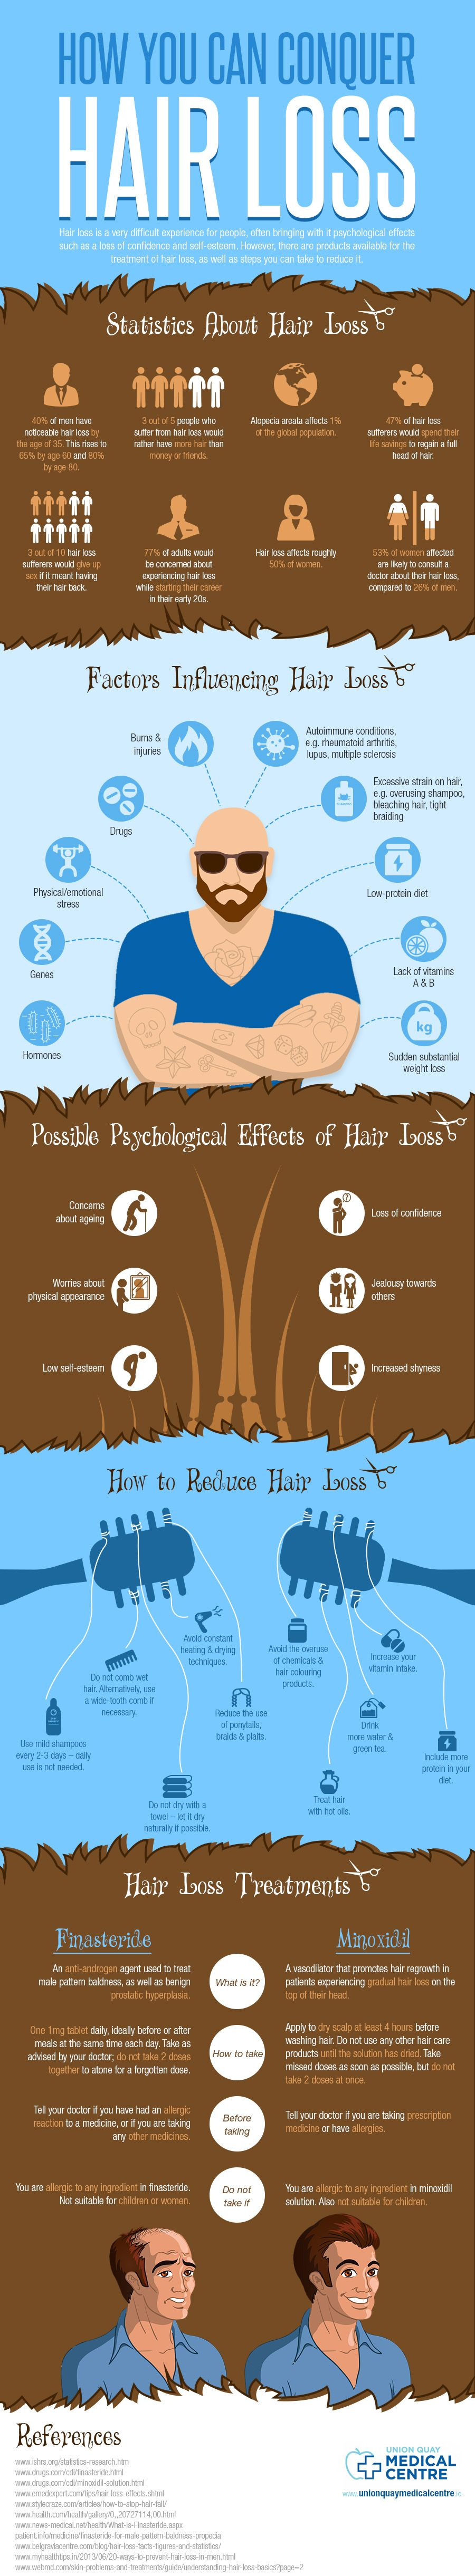 How You Can Conquer Hair Loss